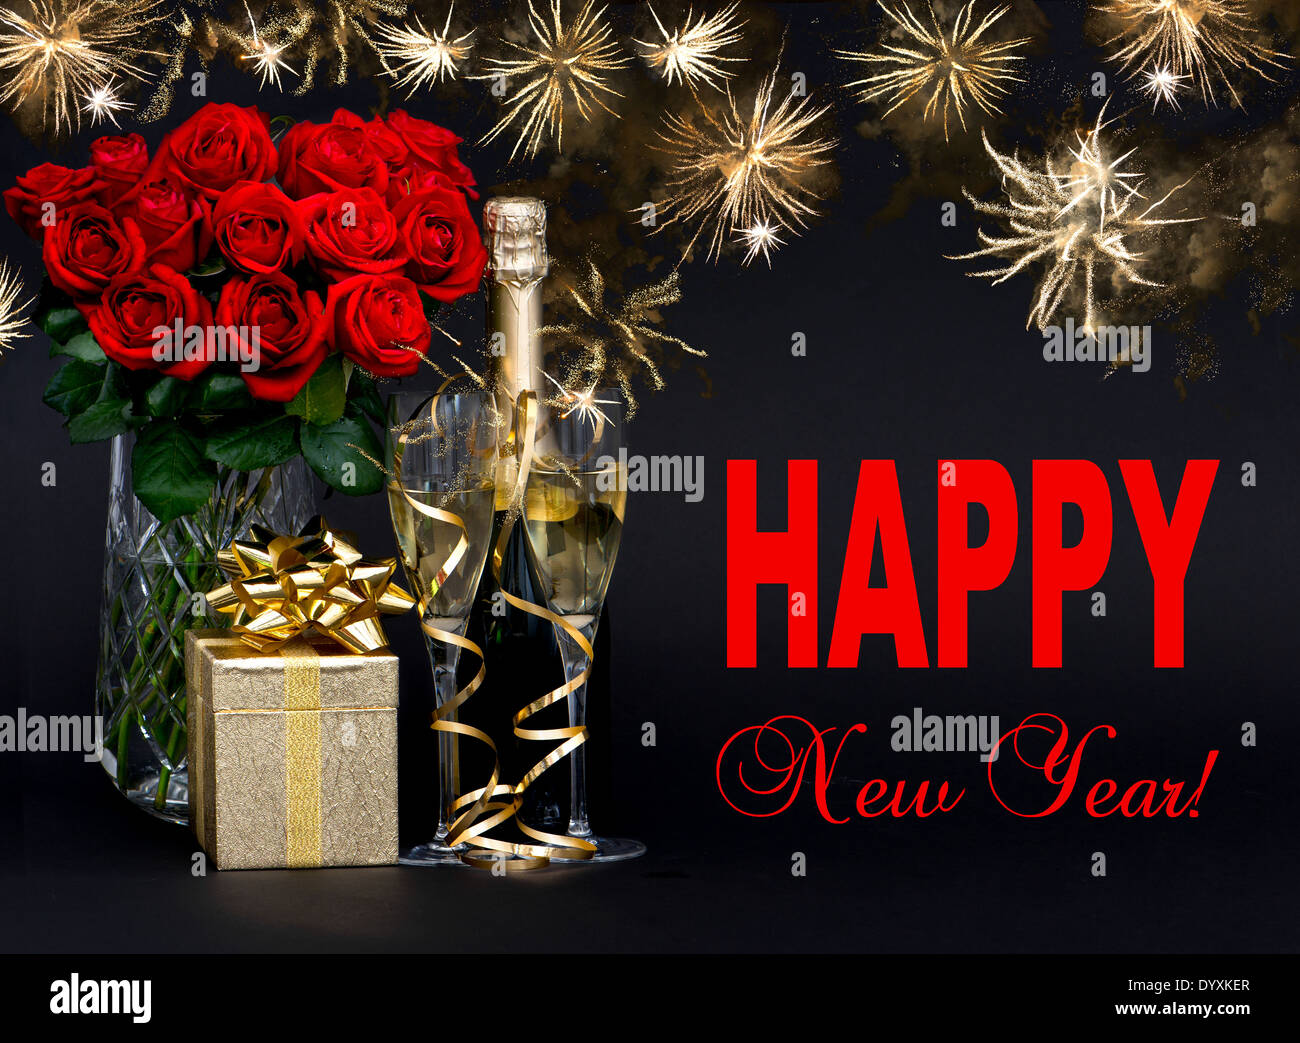 Happy new year card concept red roses bottle of champagne happy new year card concept red roses bottle of champagne golden gift with beautiful golden fireworks on black background kristyandbryce Images